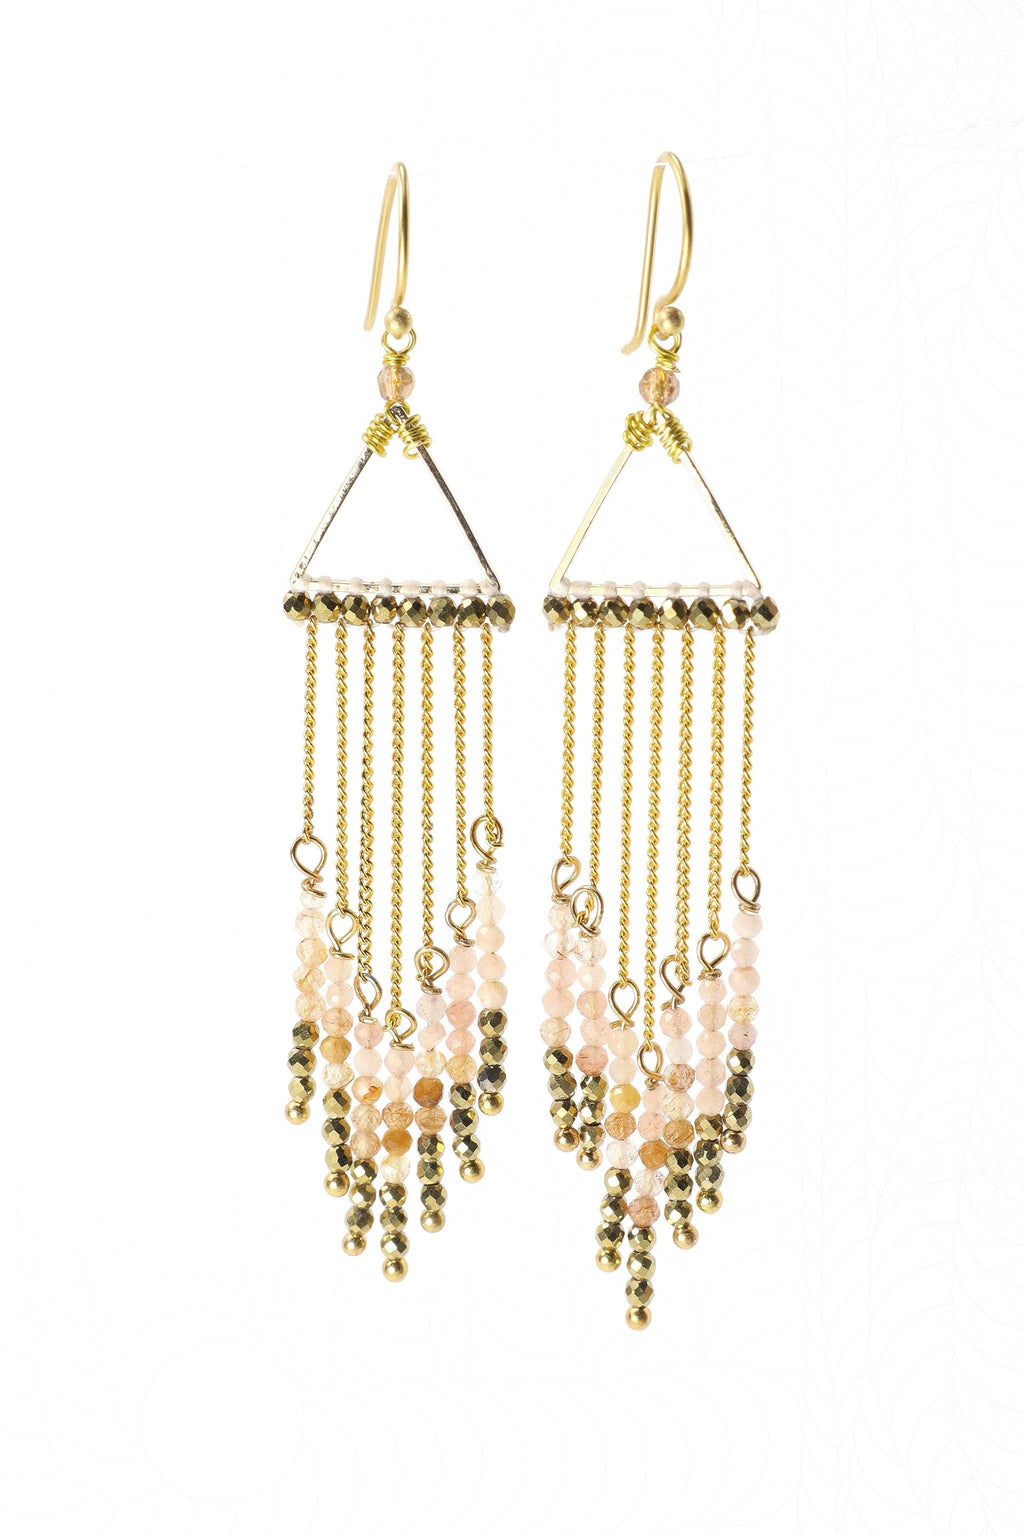 These waterfall statement earrings are a show stopper. They feature beautiful, faceted rose quartz, citrine, and pyrite gemstones hanging from a golden triangle in graduated tones from light to dark. They are handmade with love in Thailand. This is a Fairtrade Product.